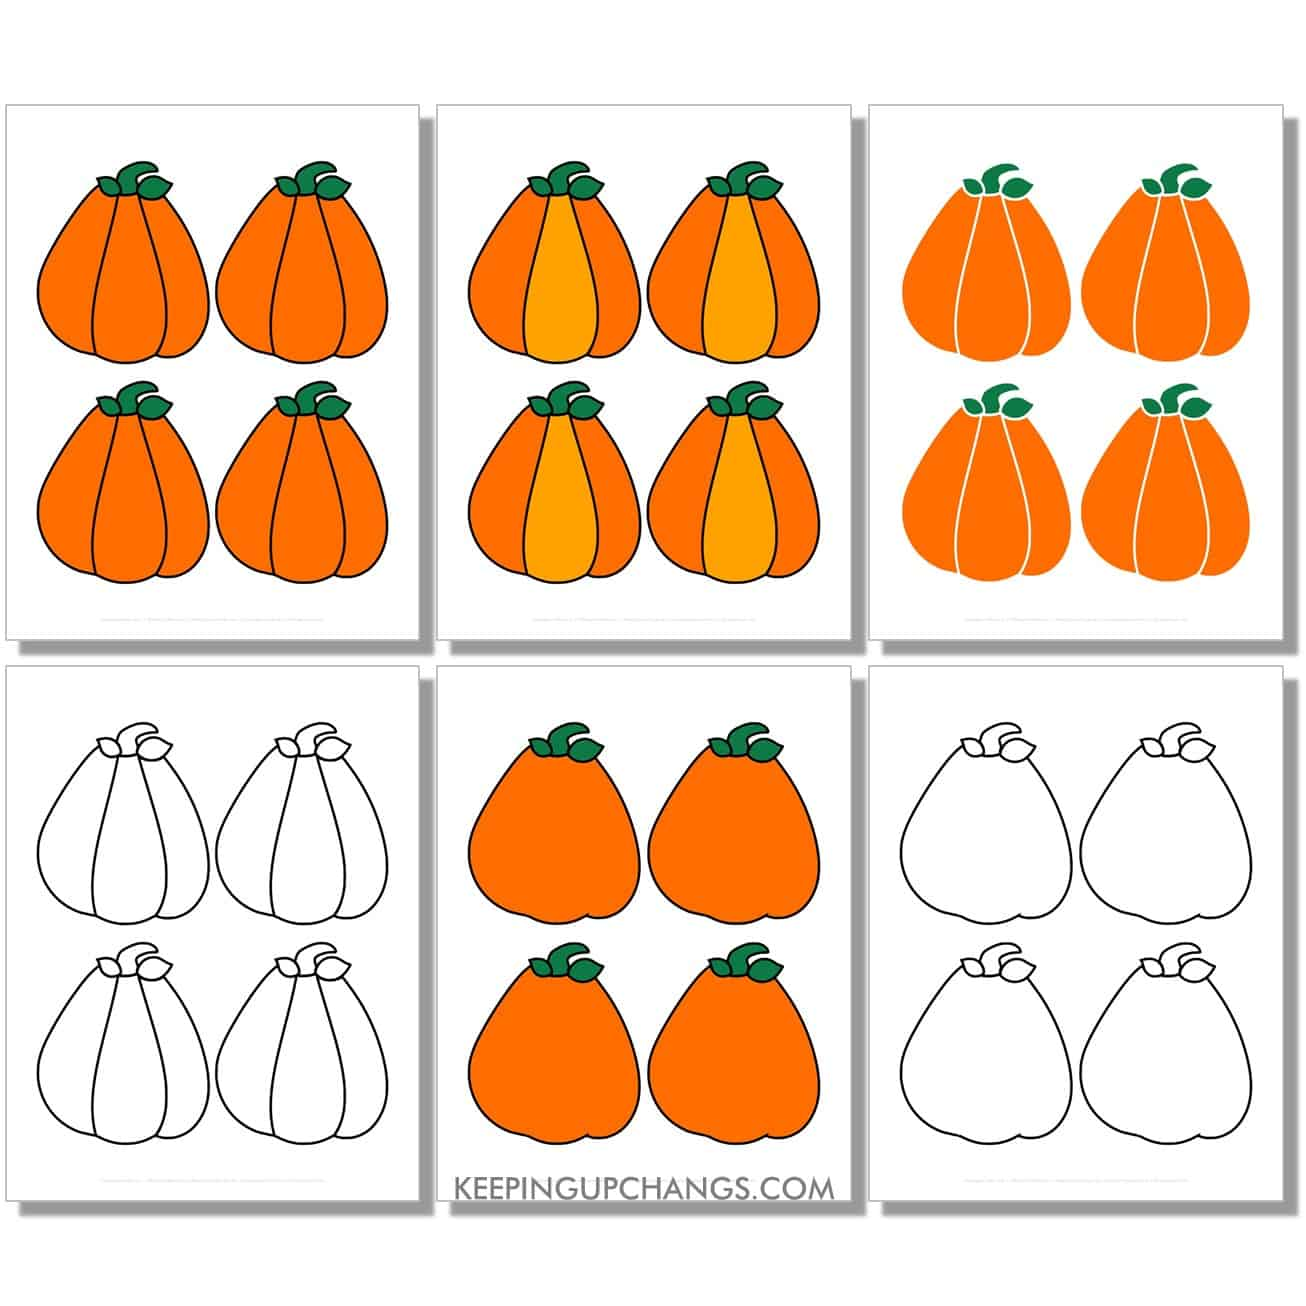 free small triangle pumpkin in color, black and white, silhouette, 4 to a page.